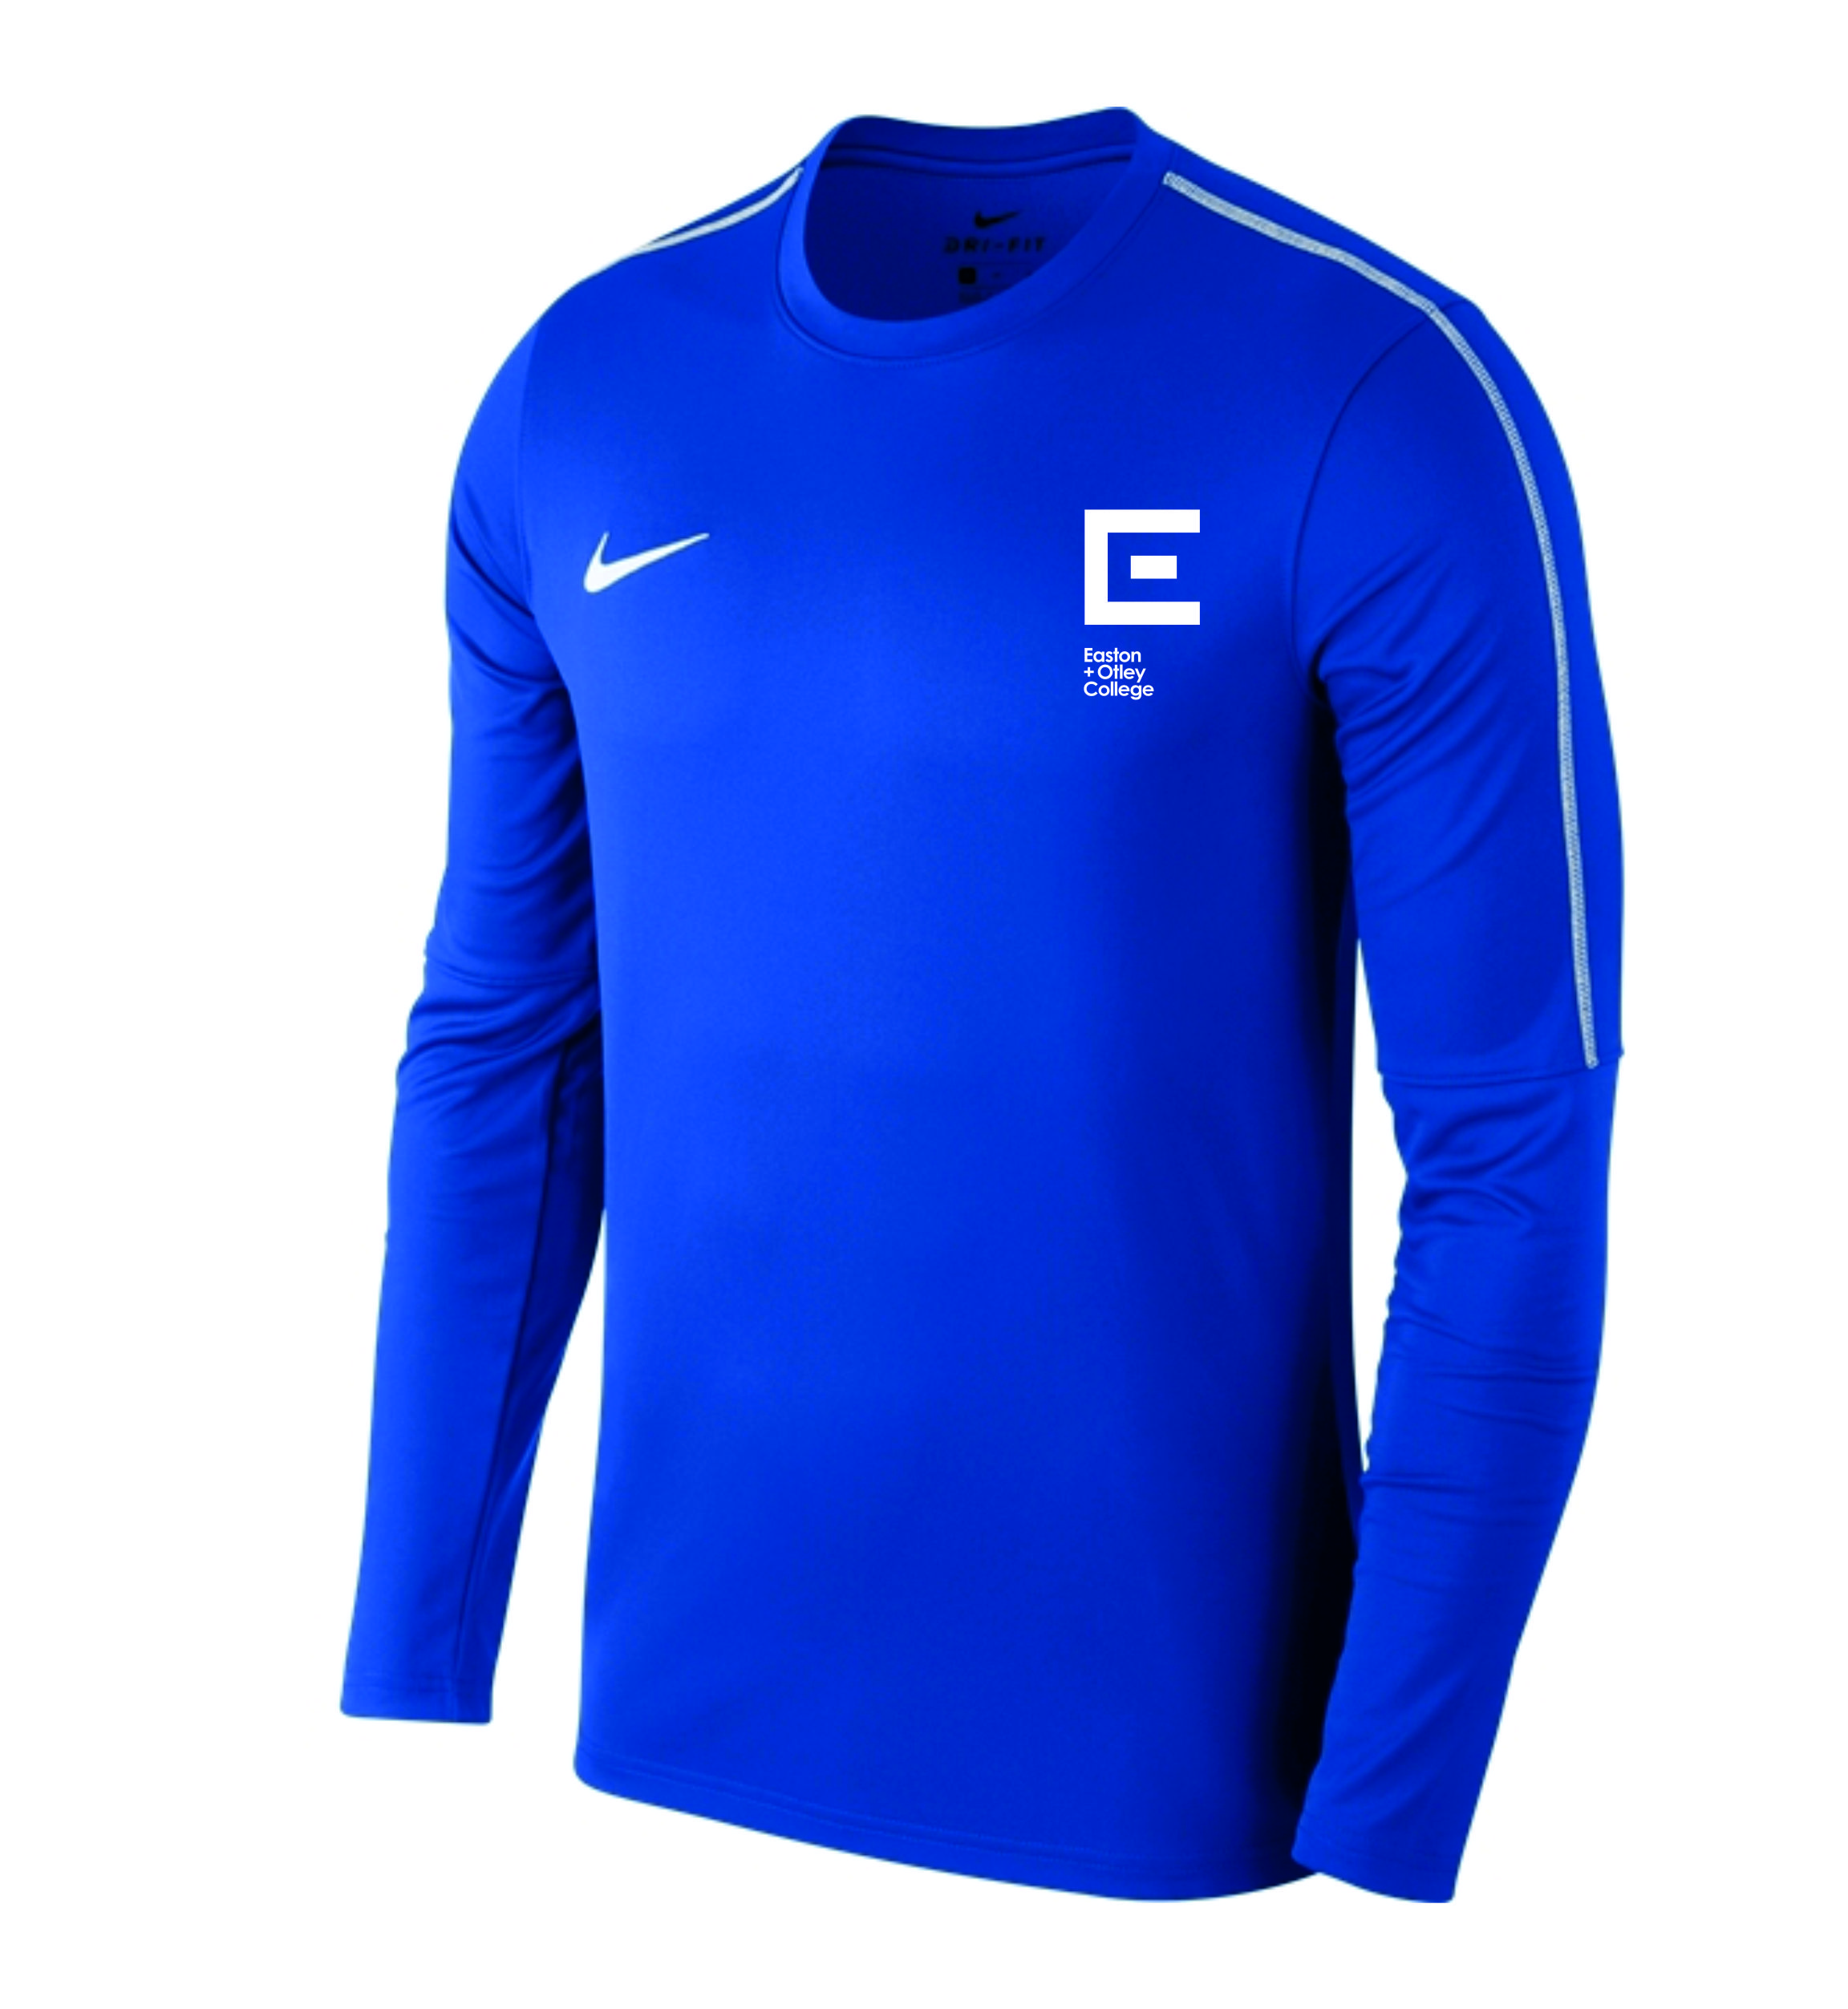 Easton Nike Crew Sweat